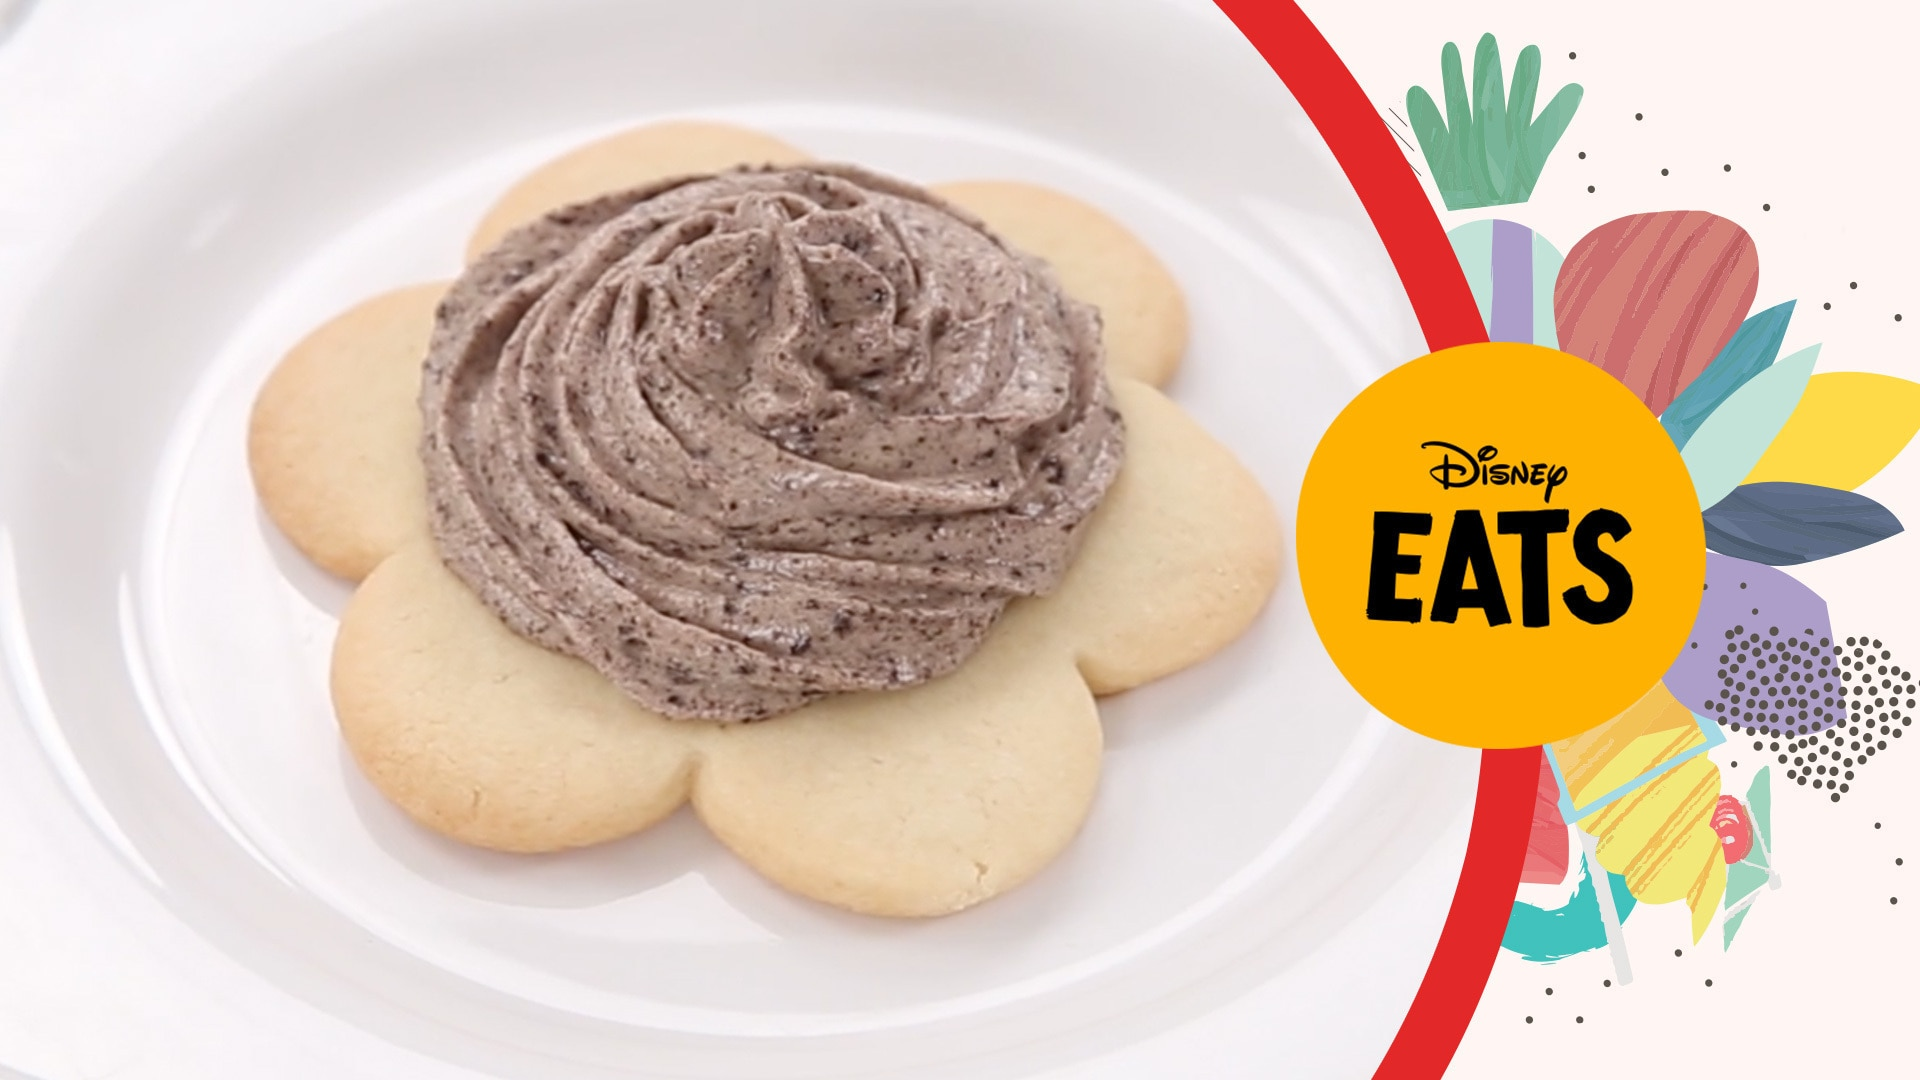 """The """"Grey Stuff"""" from Beauty and the Beast   Disney Eats"""